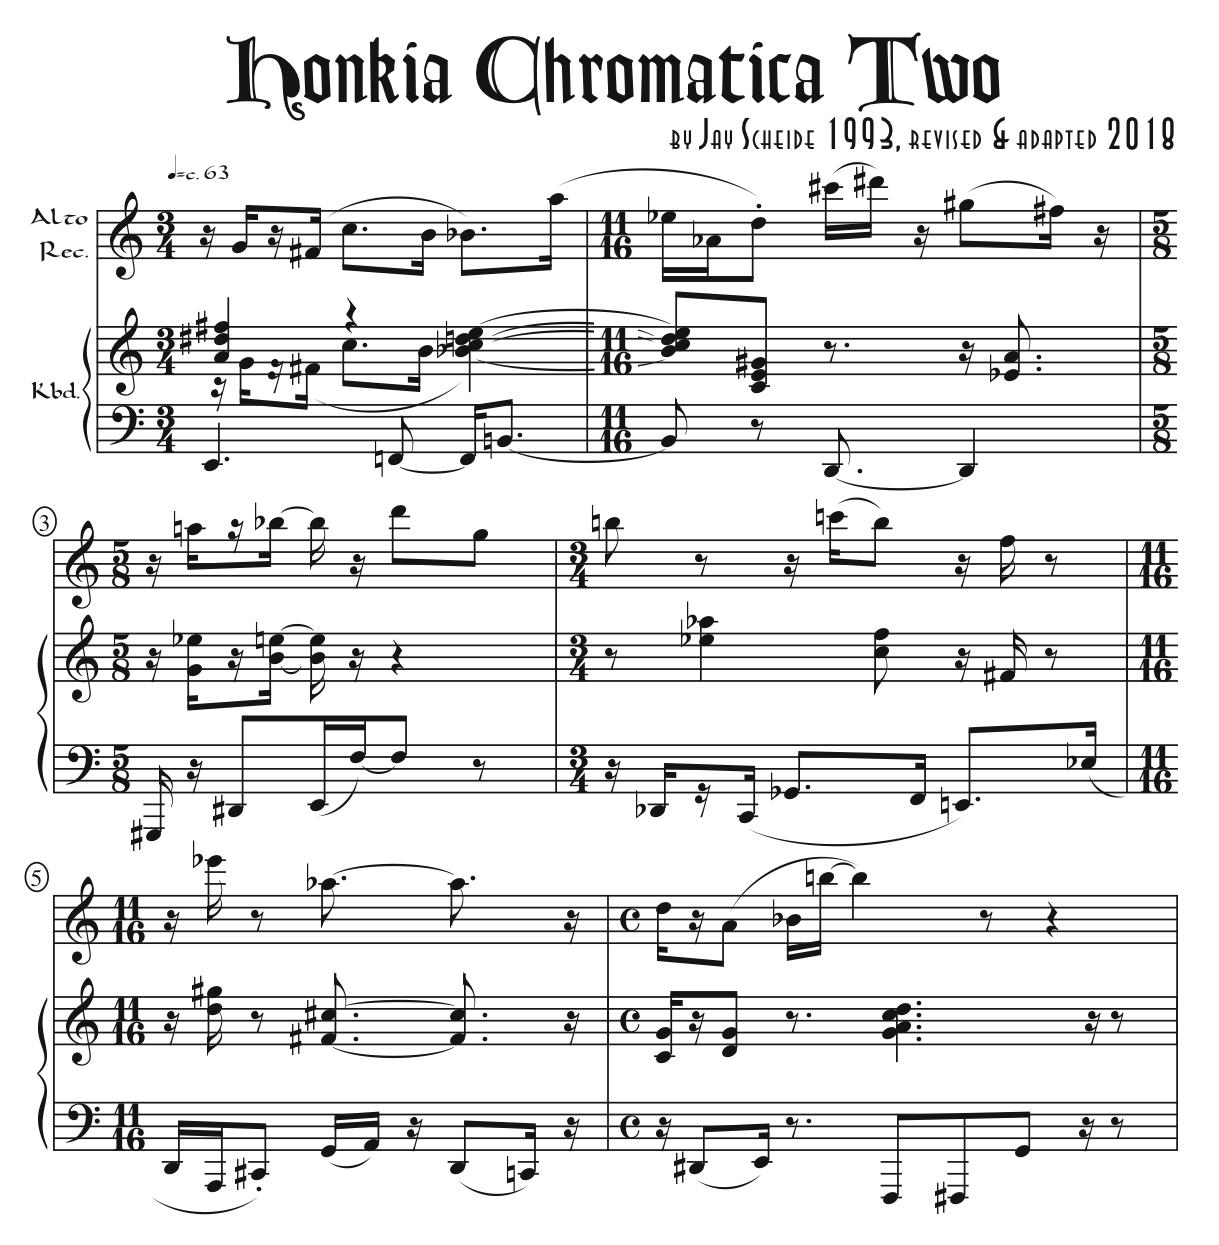 Honkia Chromatica Two